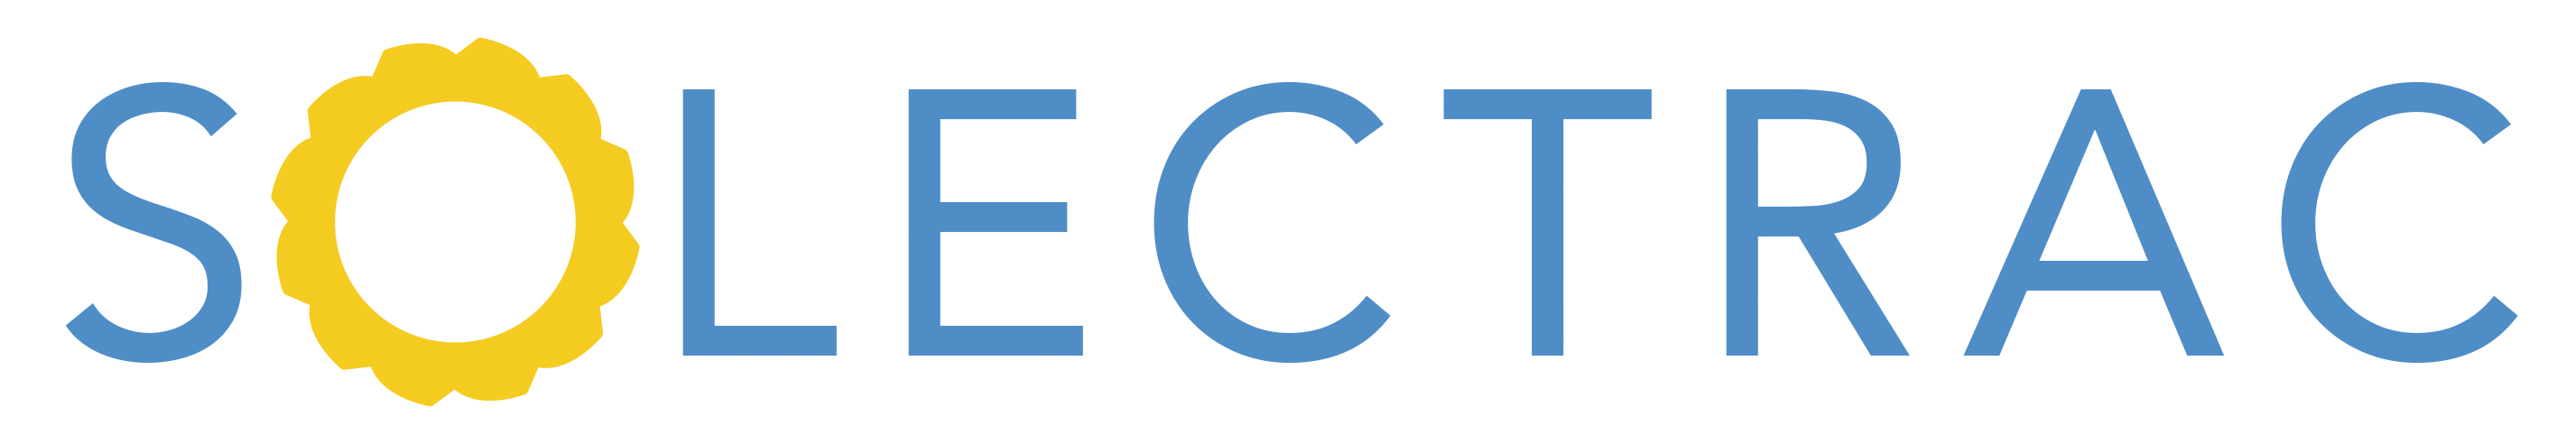 Logo for Solectrac